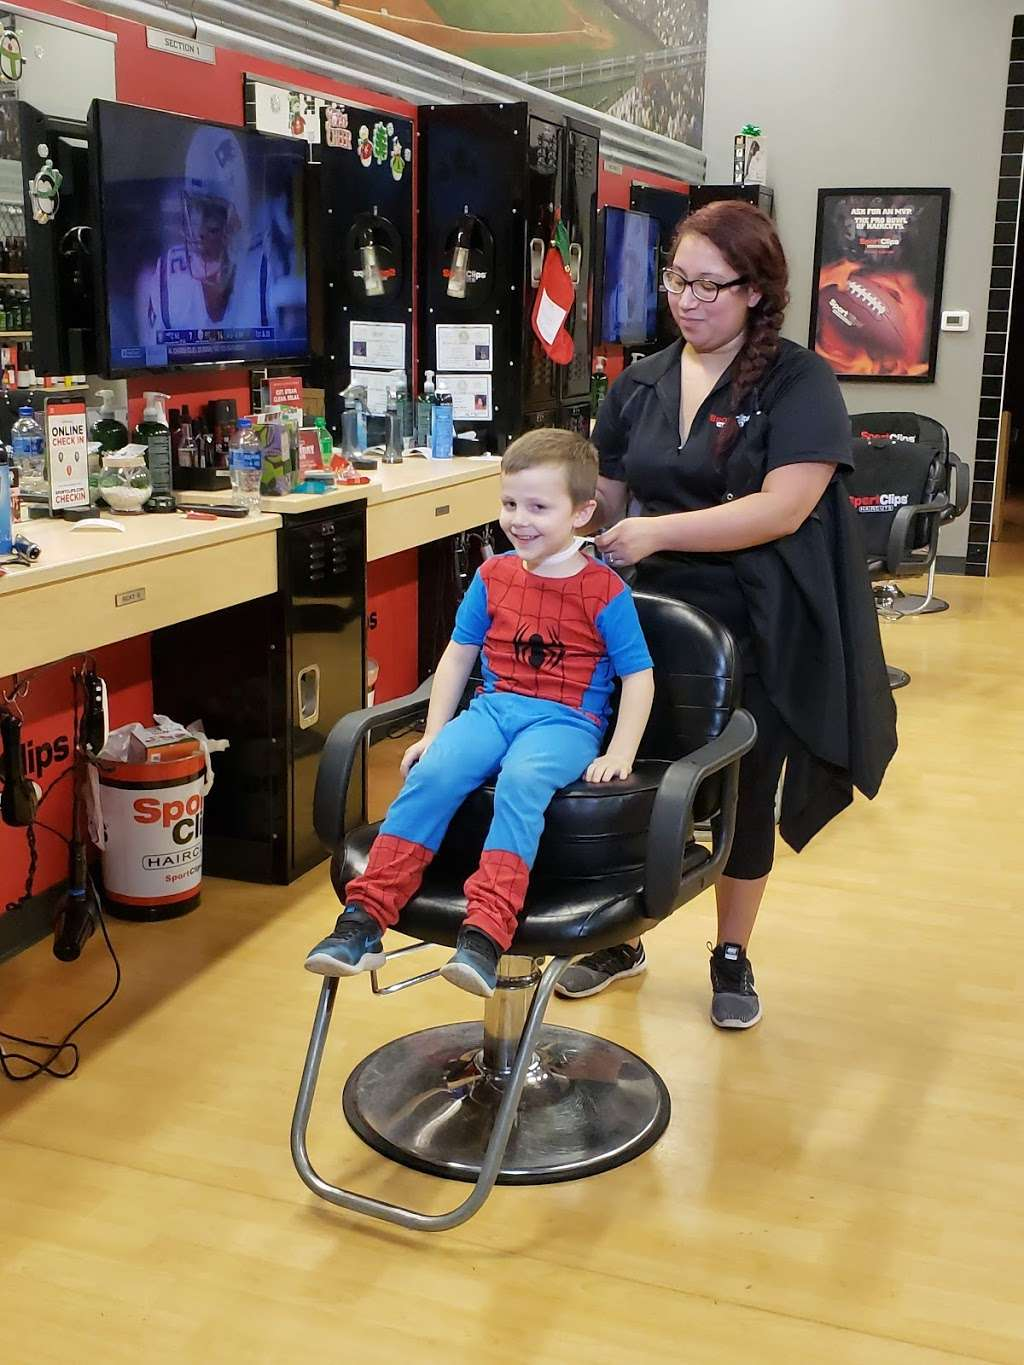 Sport Clips Haircuts of Alvin Center - hair care    Photo 4 of 7   Address: 252 N Bypass 35 Suite B, Alvin, TX 77511, USA   Phone: (281) 585-9600